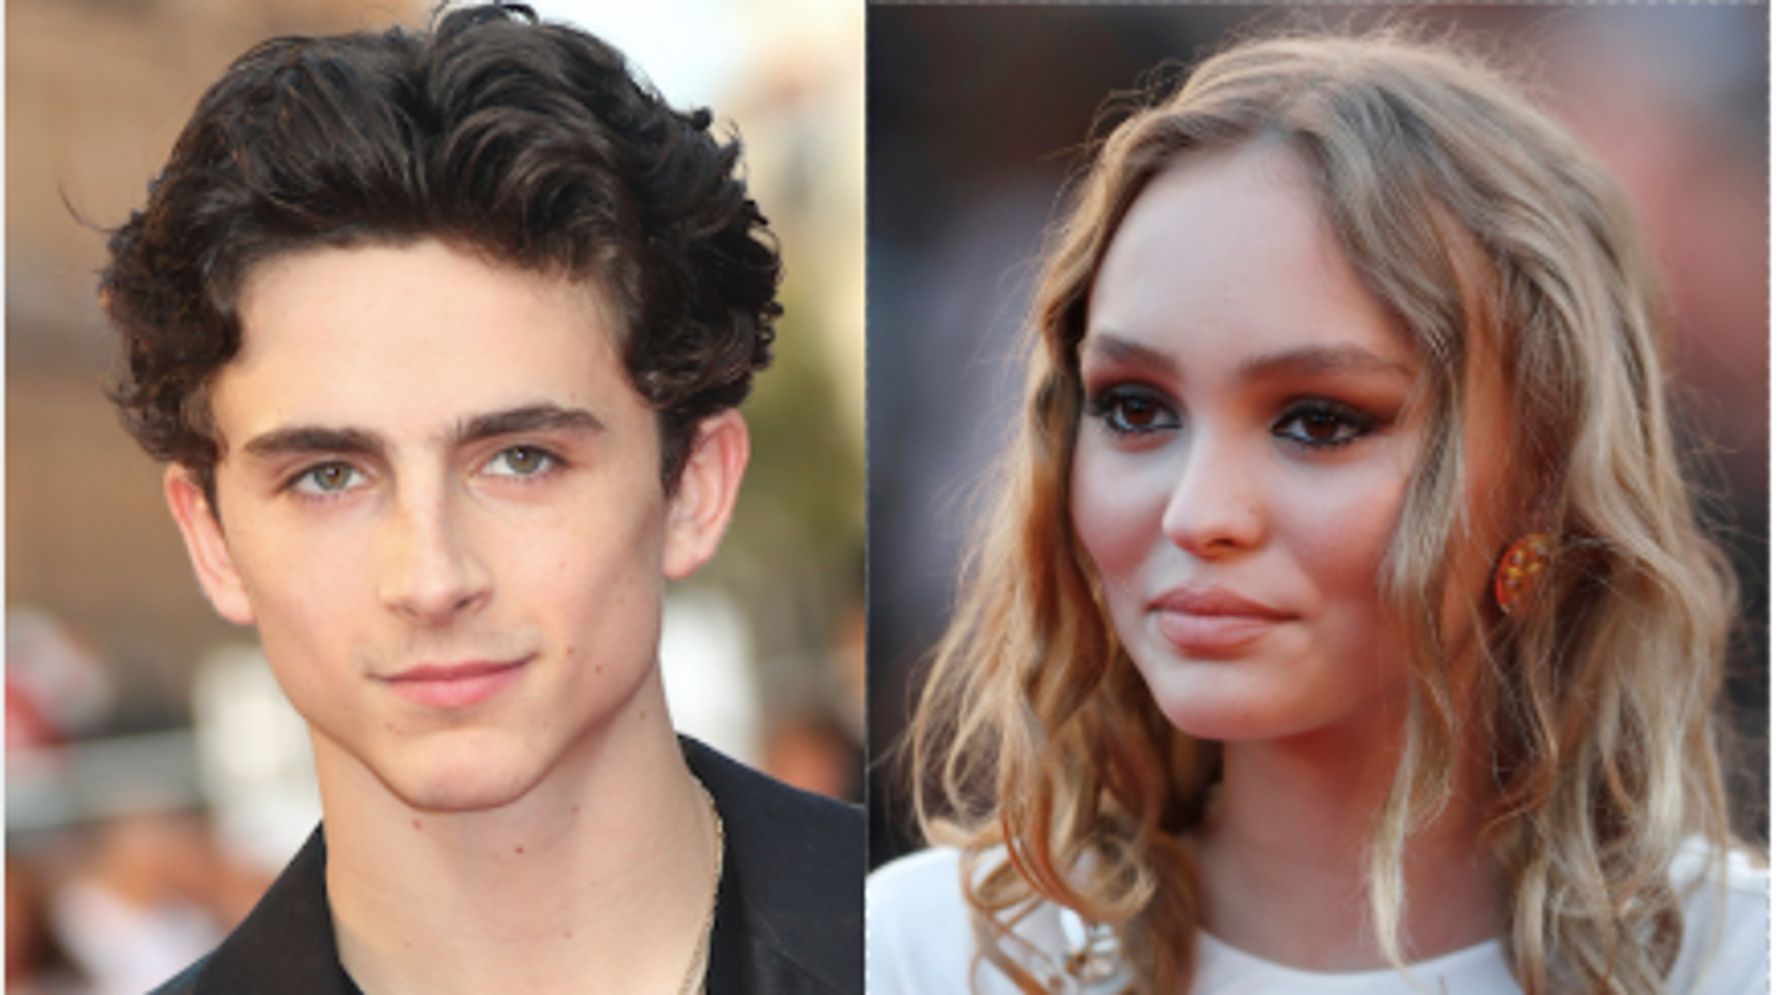 Timothée Chalamet And Lily-Rose Depp Spotted Kissing On Our